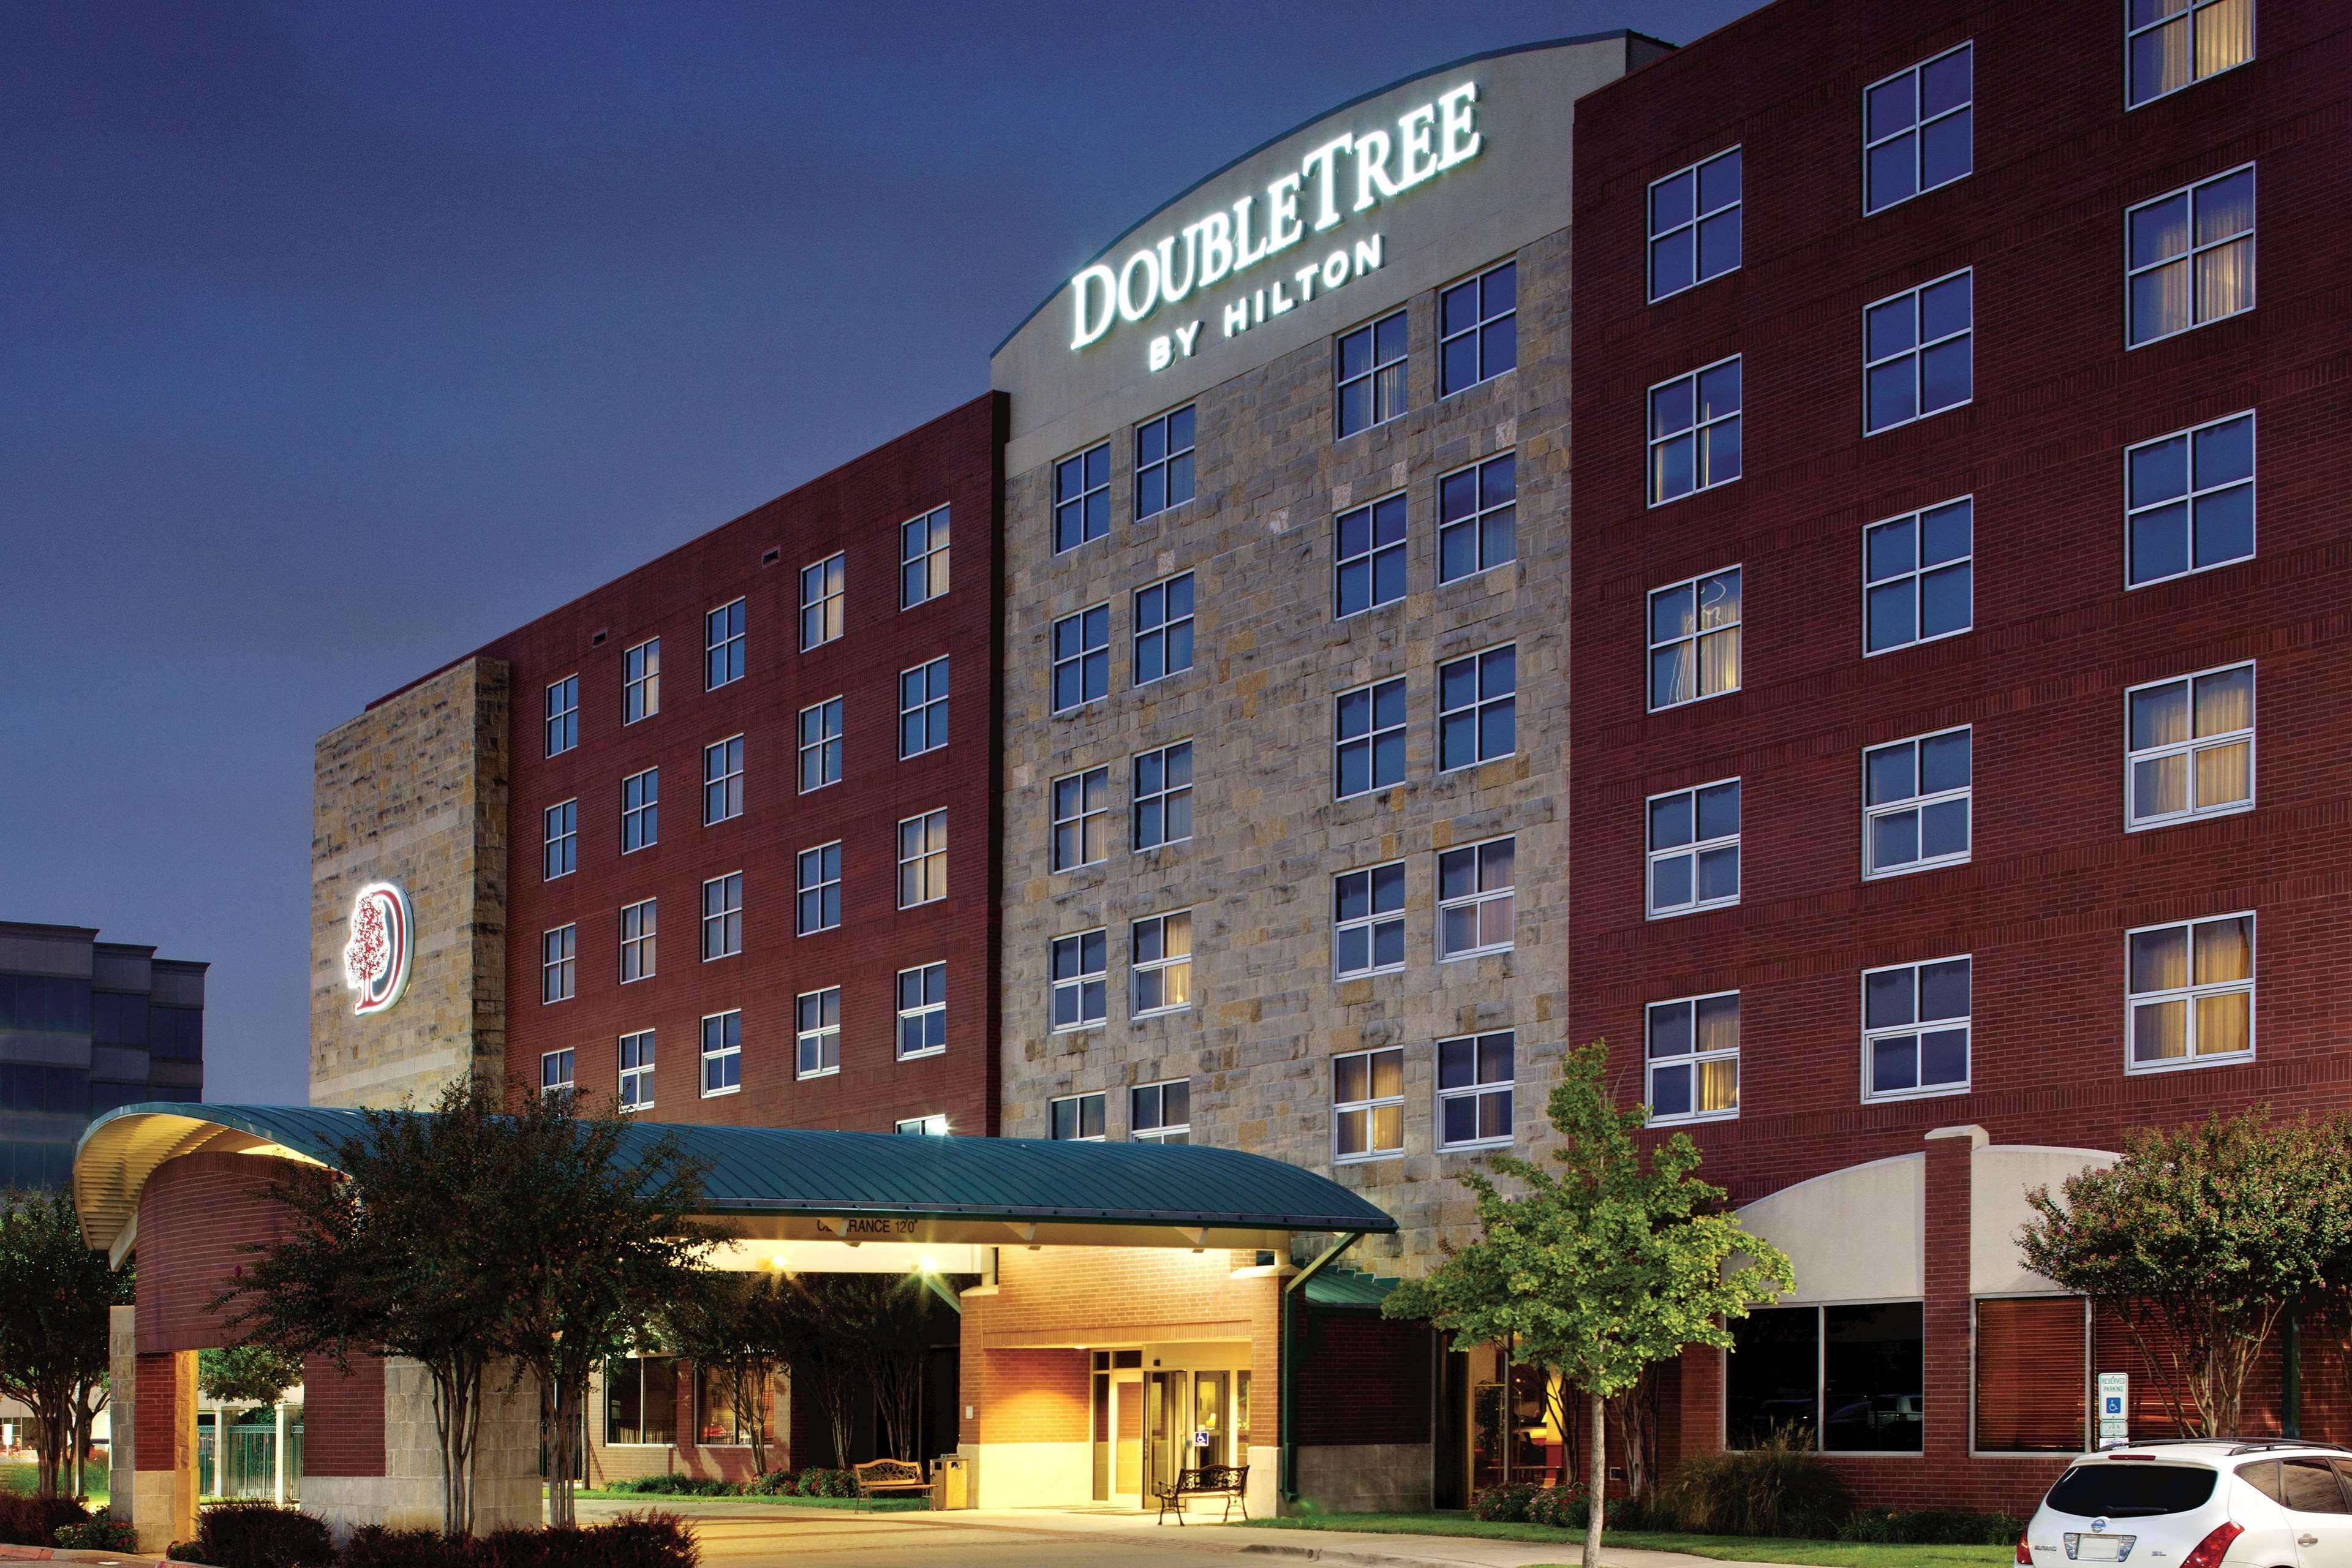 doubletree by hilton hotel dallas farmers branch. Black Bedroom Furniture Sets. Home Design Ideas